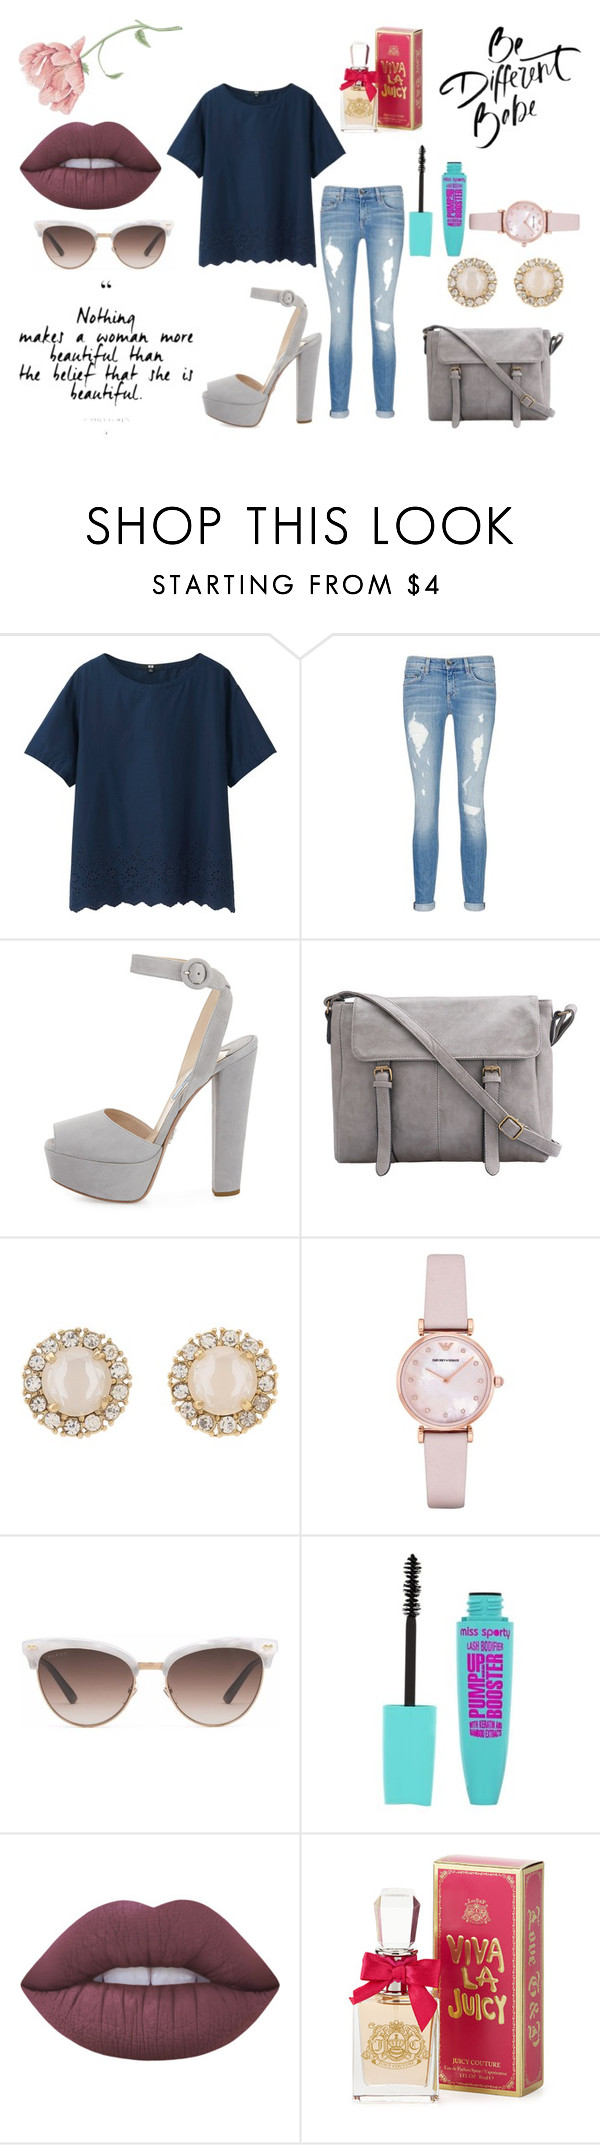 """""""Untitled #103"""" by kora-muffin on Polyvore featuring Uniqlo, rag & bone/JEAN, Prada, Kate Spade, Emporio Armani, Gucci, Lime Crime and Juicy Couture"""